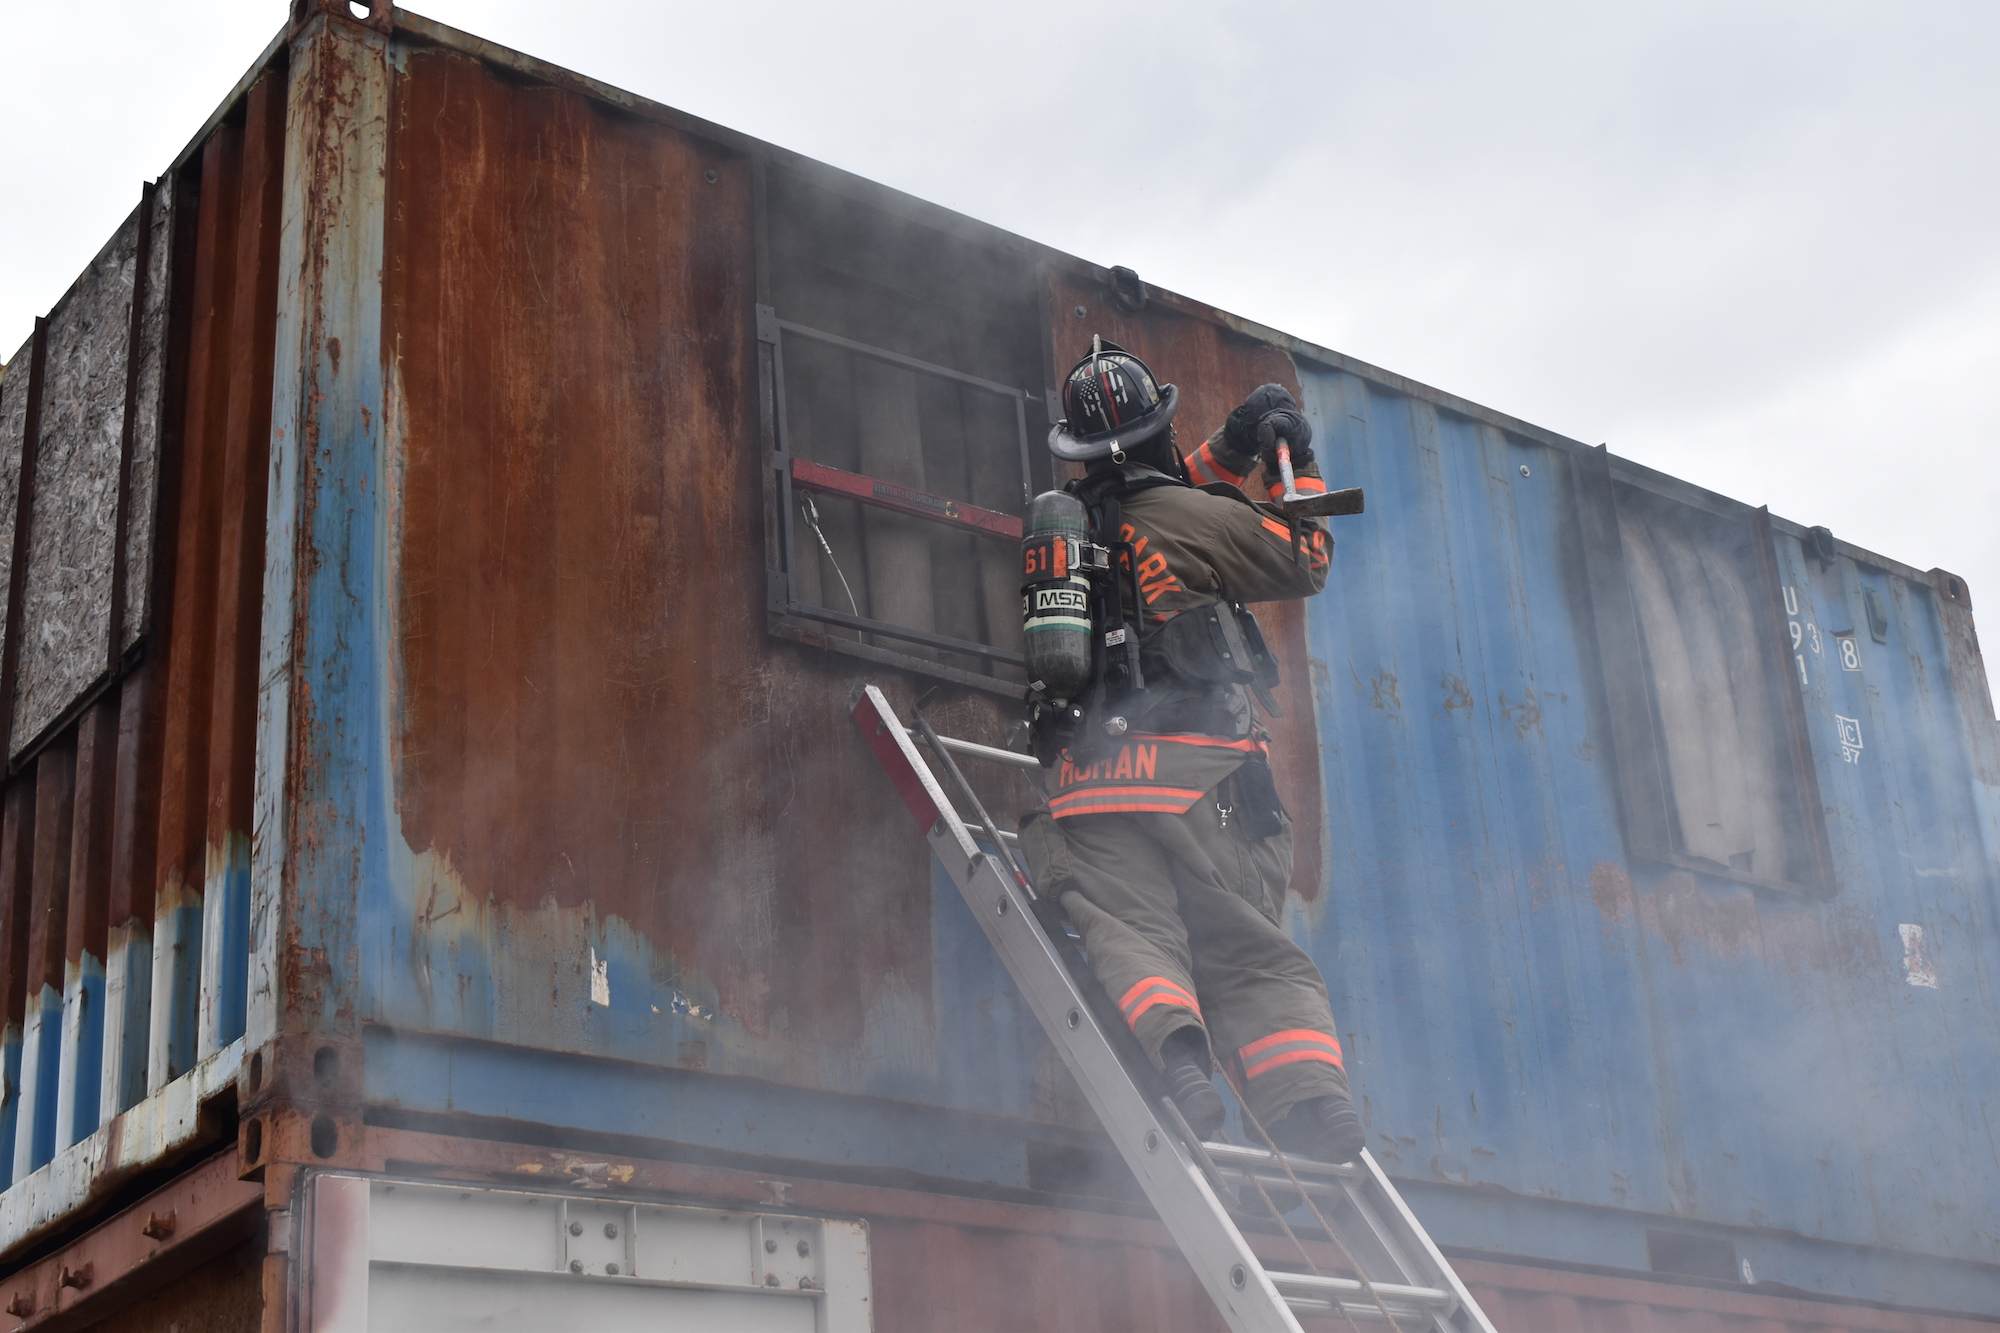 Firefighter climbing a ladder to a second story container building during live burn training.